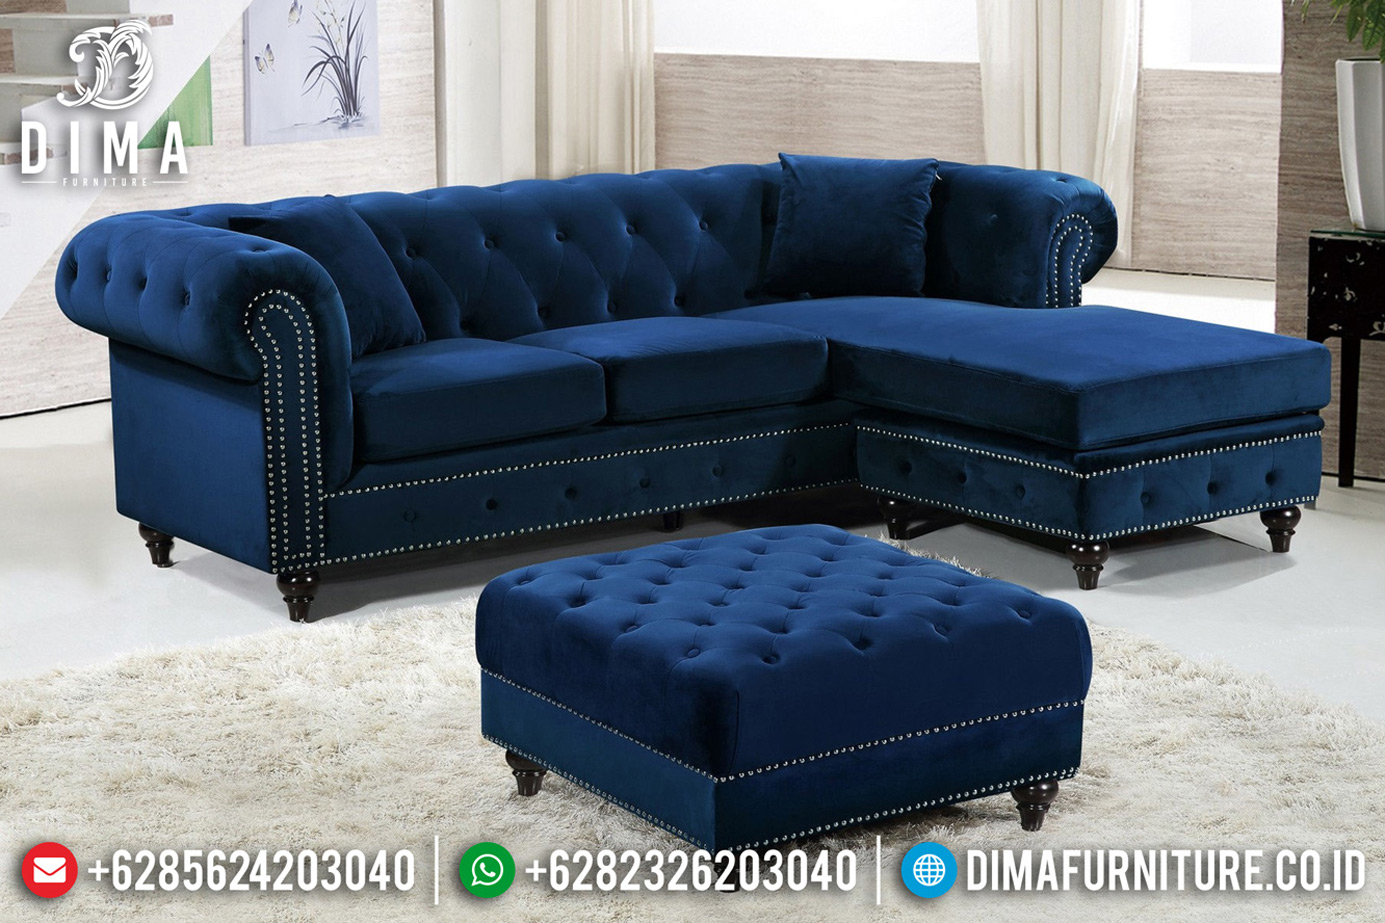 Best Price Sofa Tamu Modern Chesterfield Design Interior Minimalis BT-0622